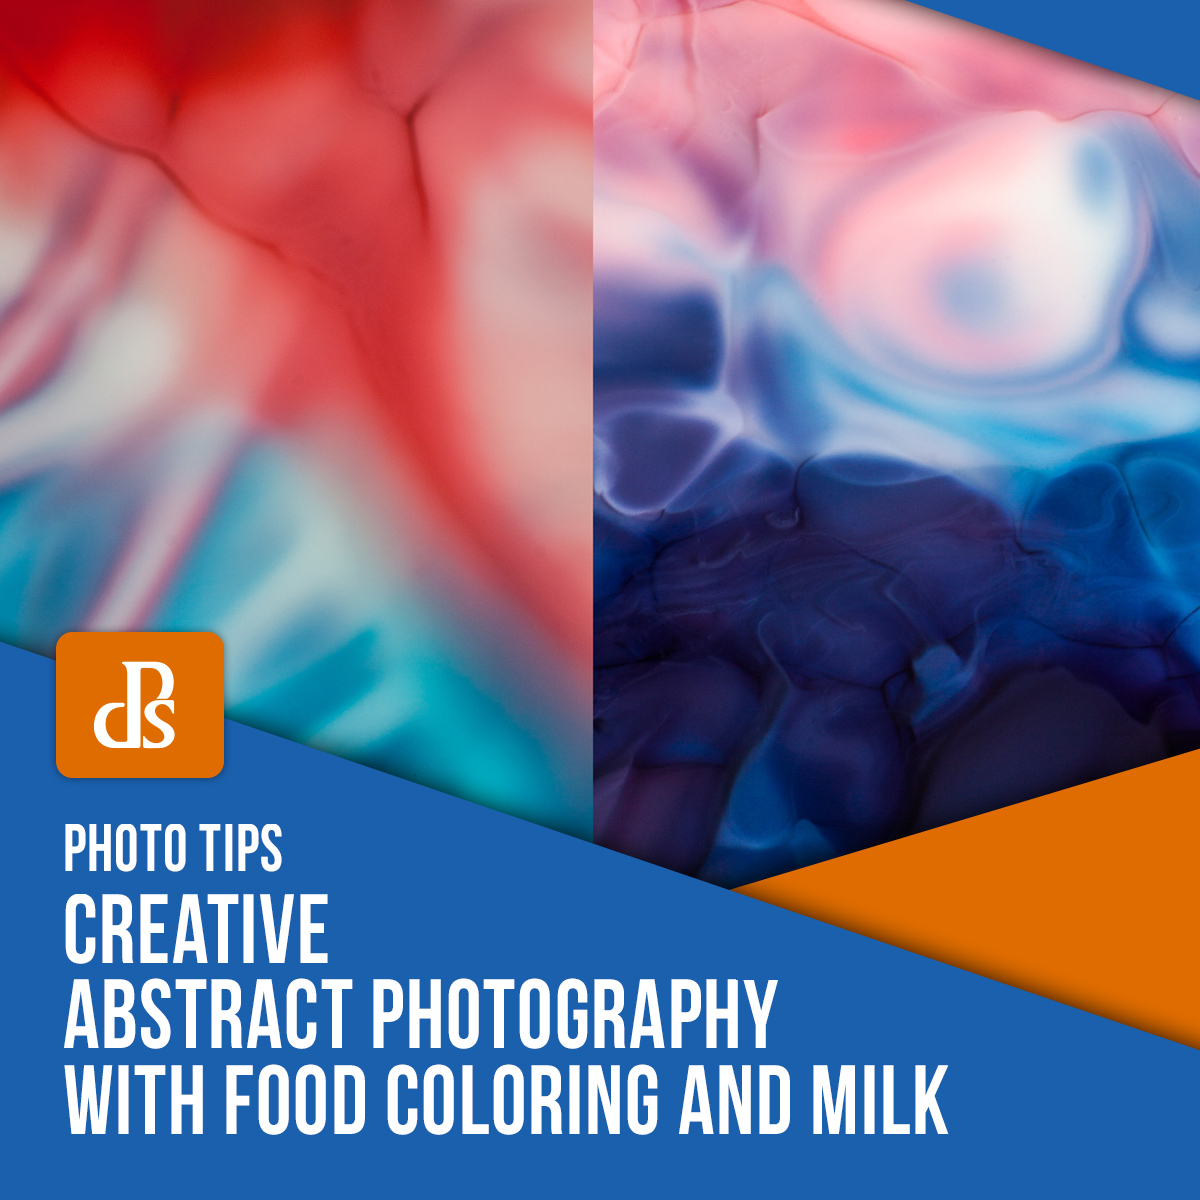 Creative Abstract Photography with Food Coloring and Milk featured image